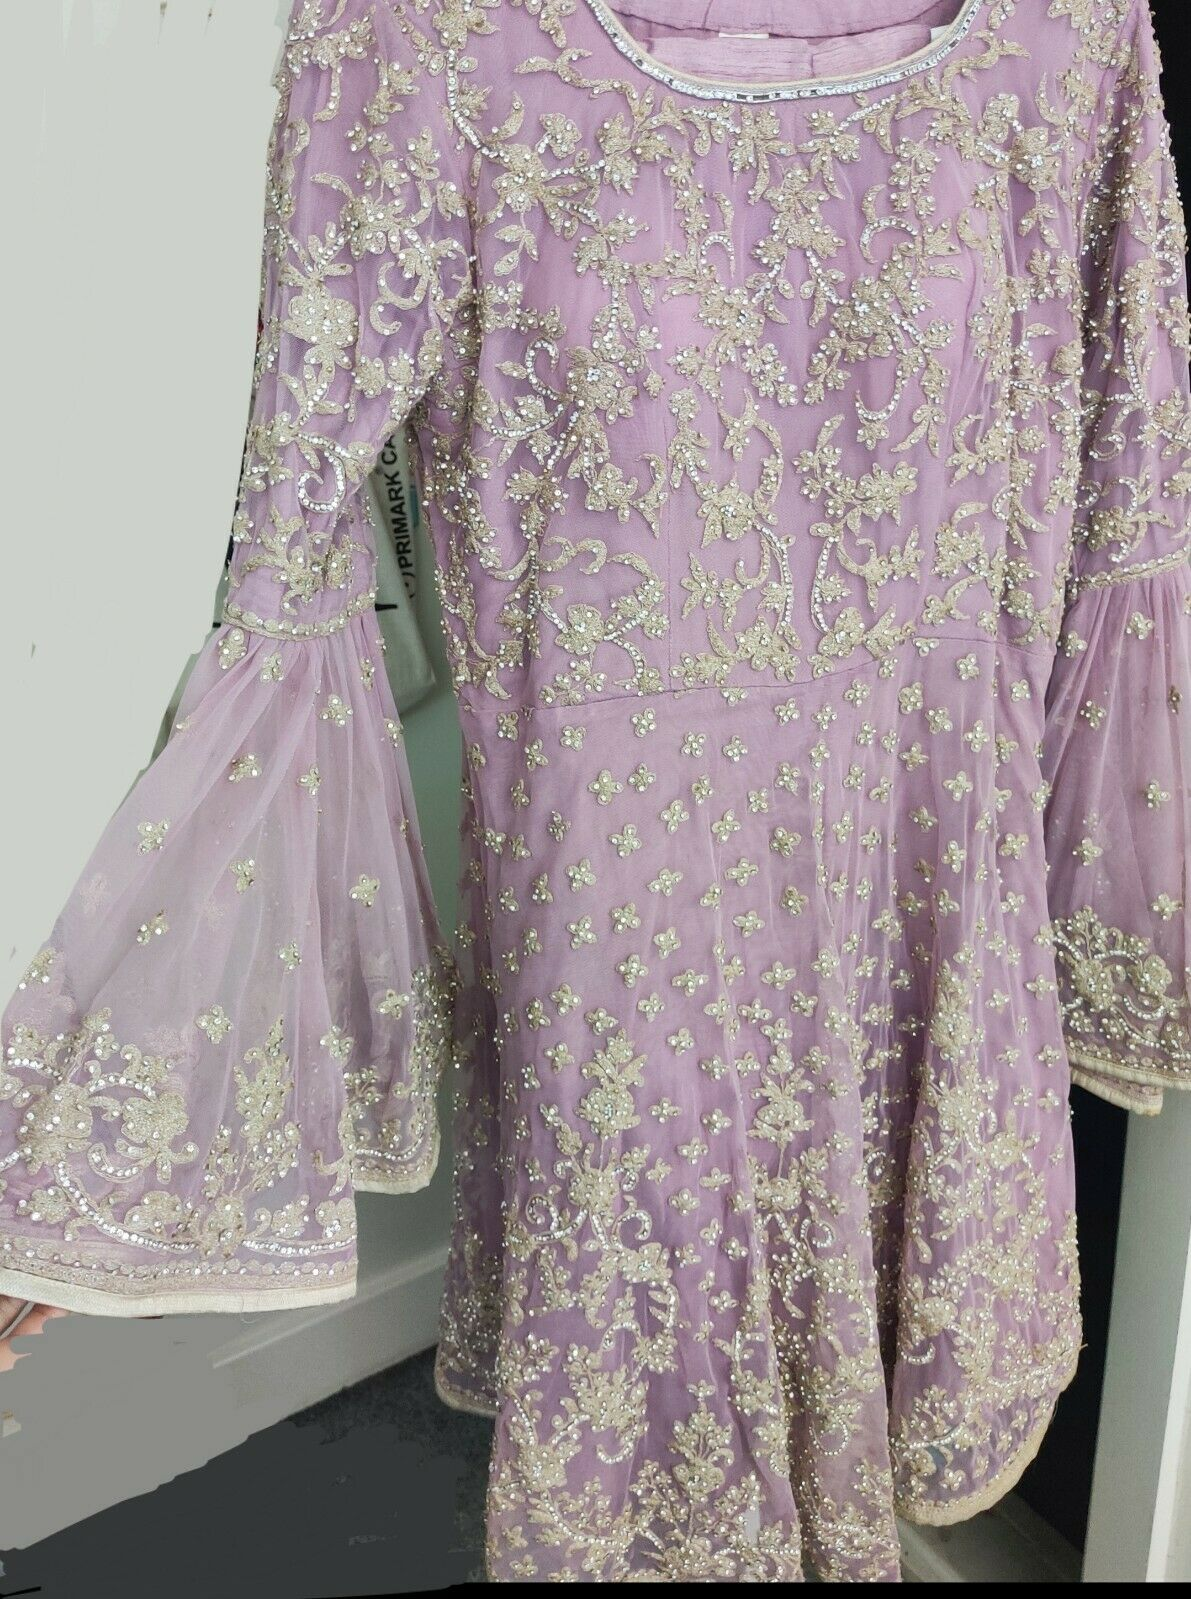 Lilac Asian Dress for weddings and occasions with stunning embroidery